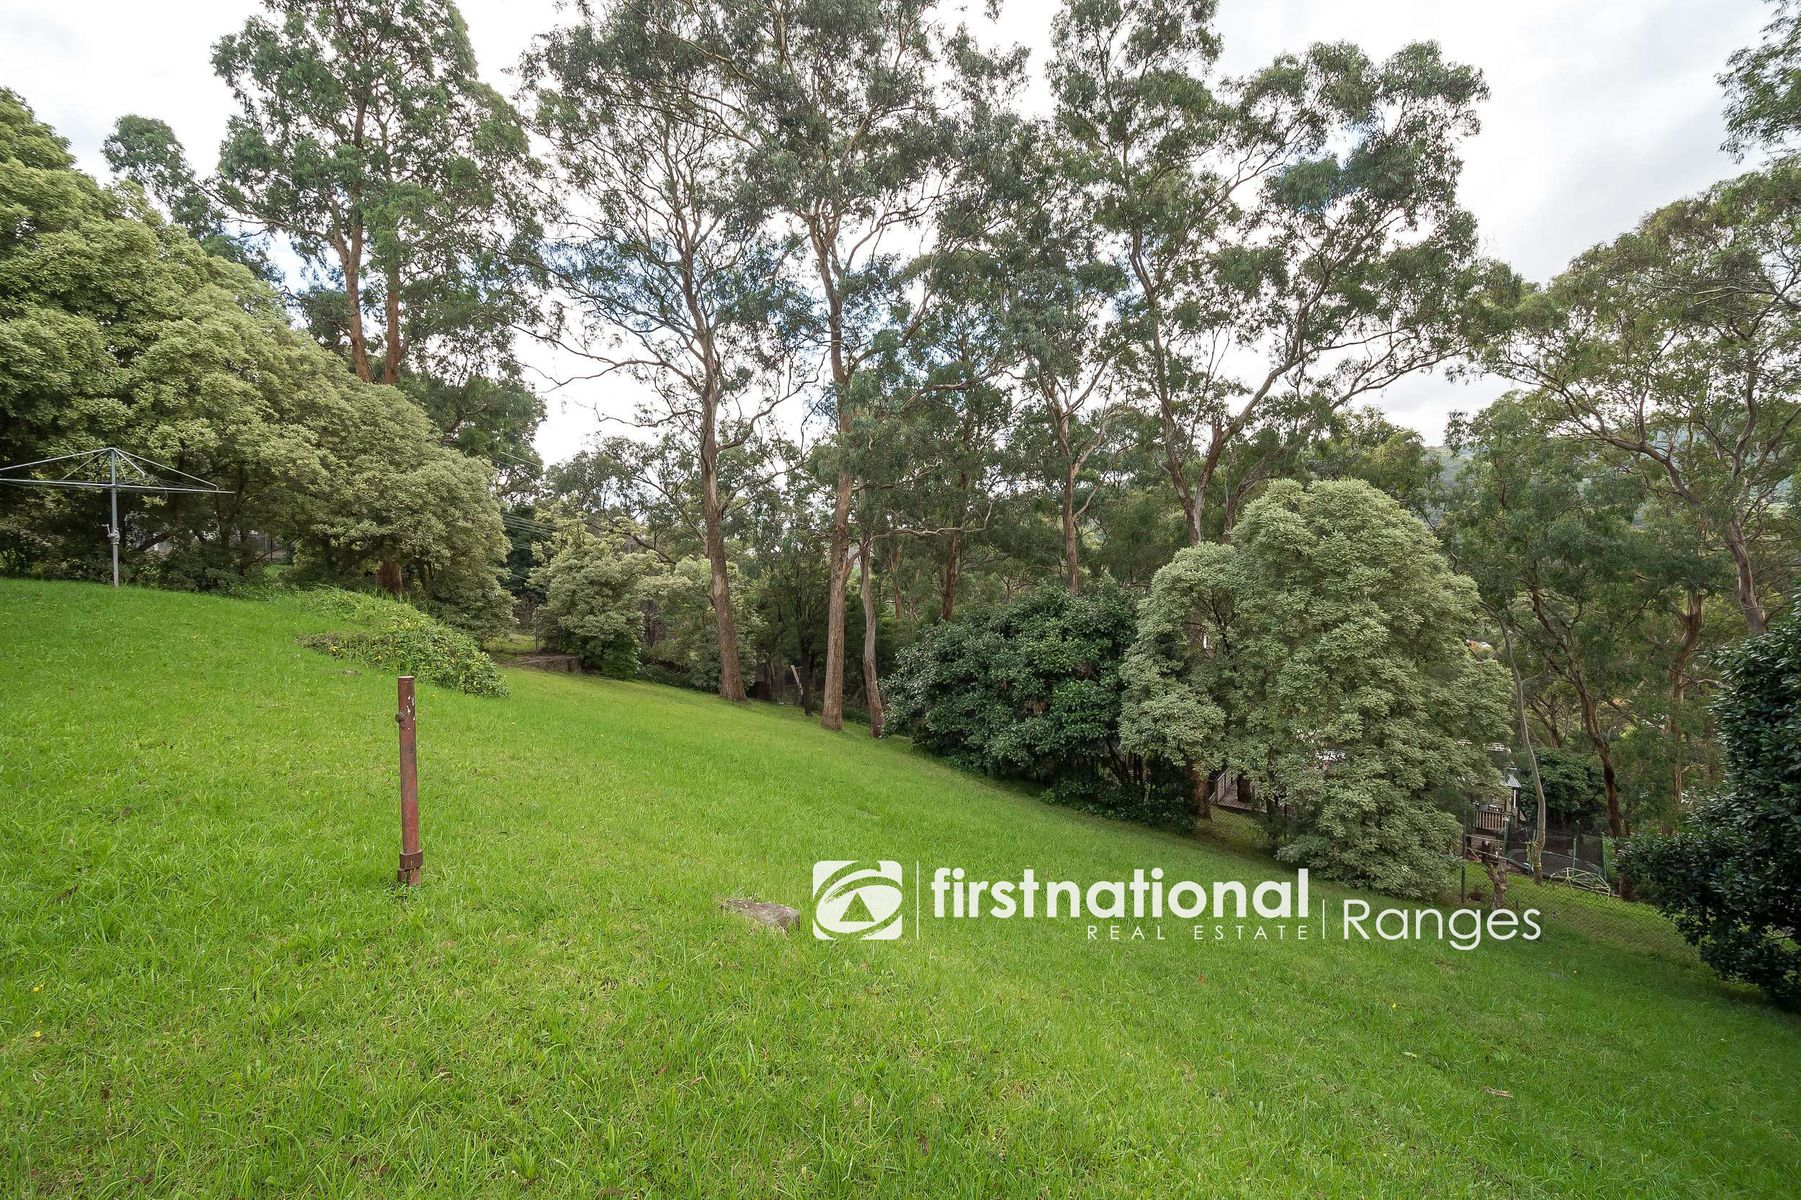 1 Victoria Ridge, Upper Ferntree Gully, VIC 3156